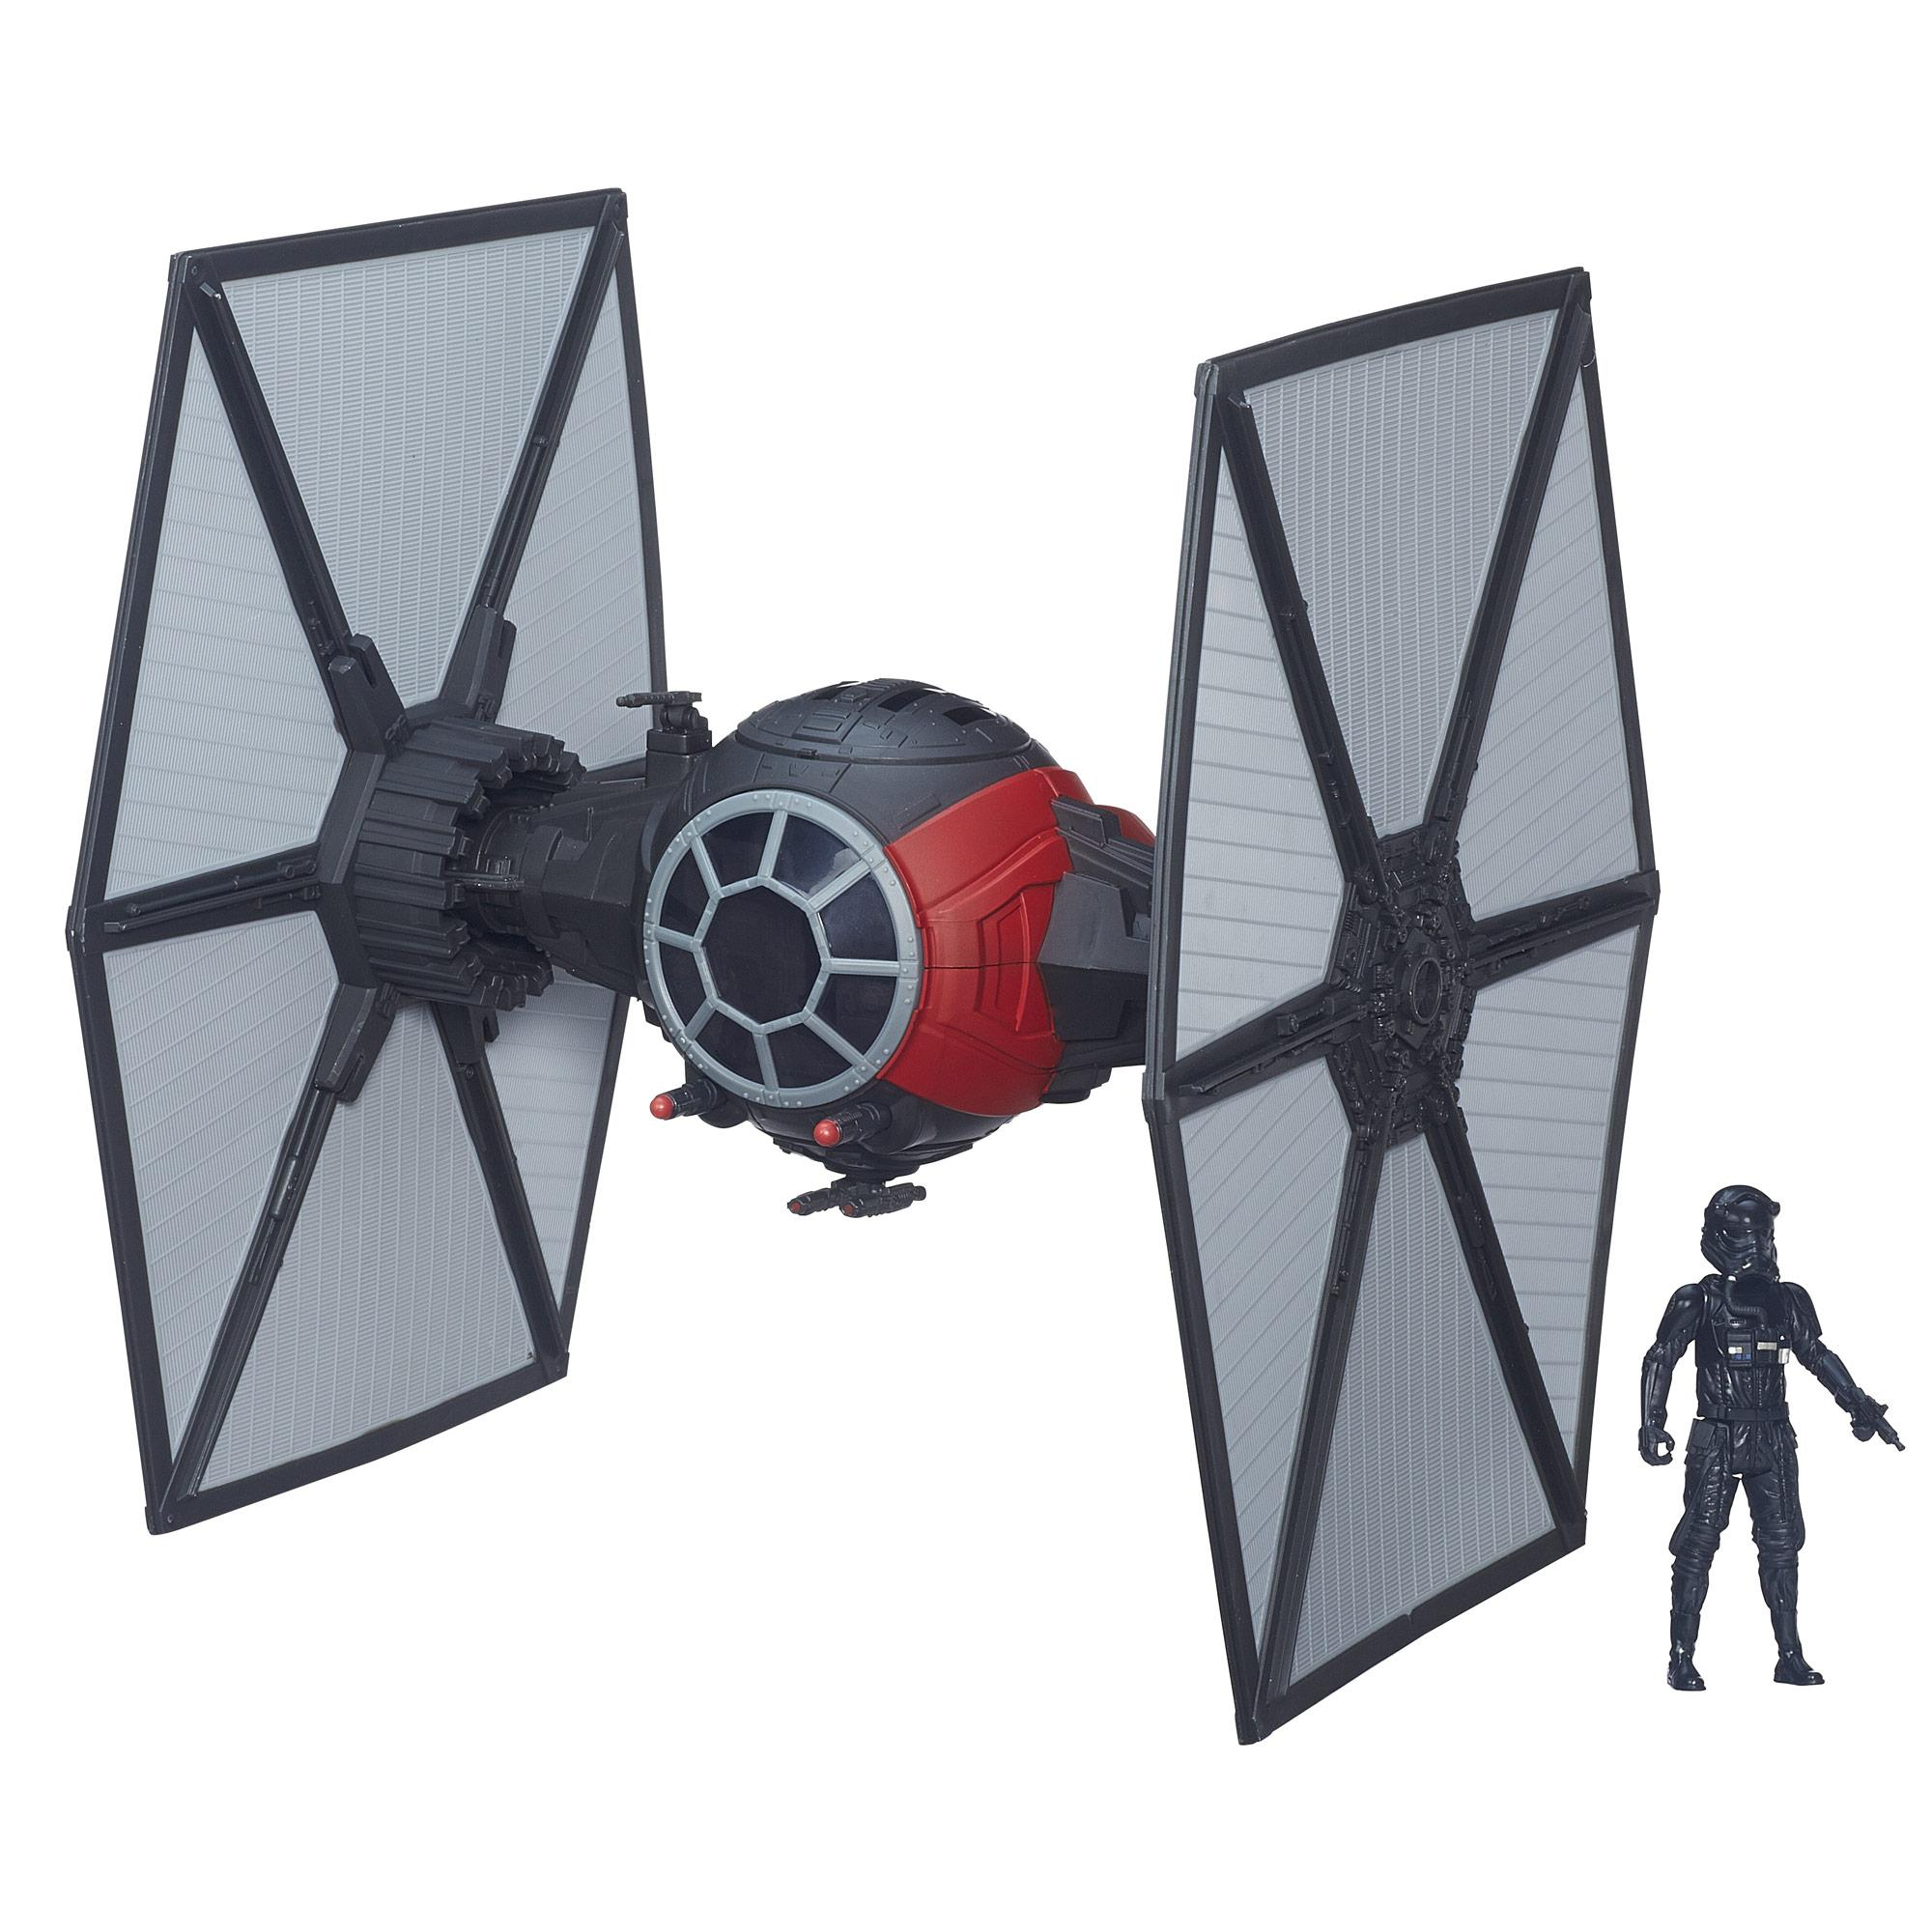 2000x2000 Star Wars The Force Awakens Special Forces Tie Fighter 00